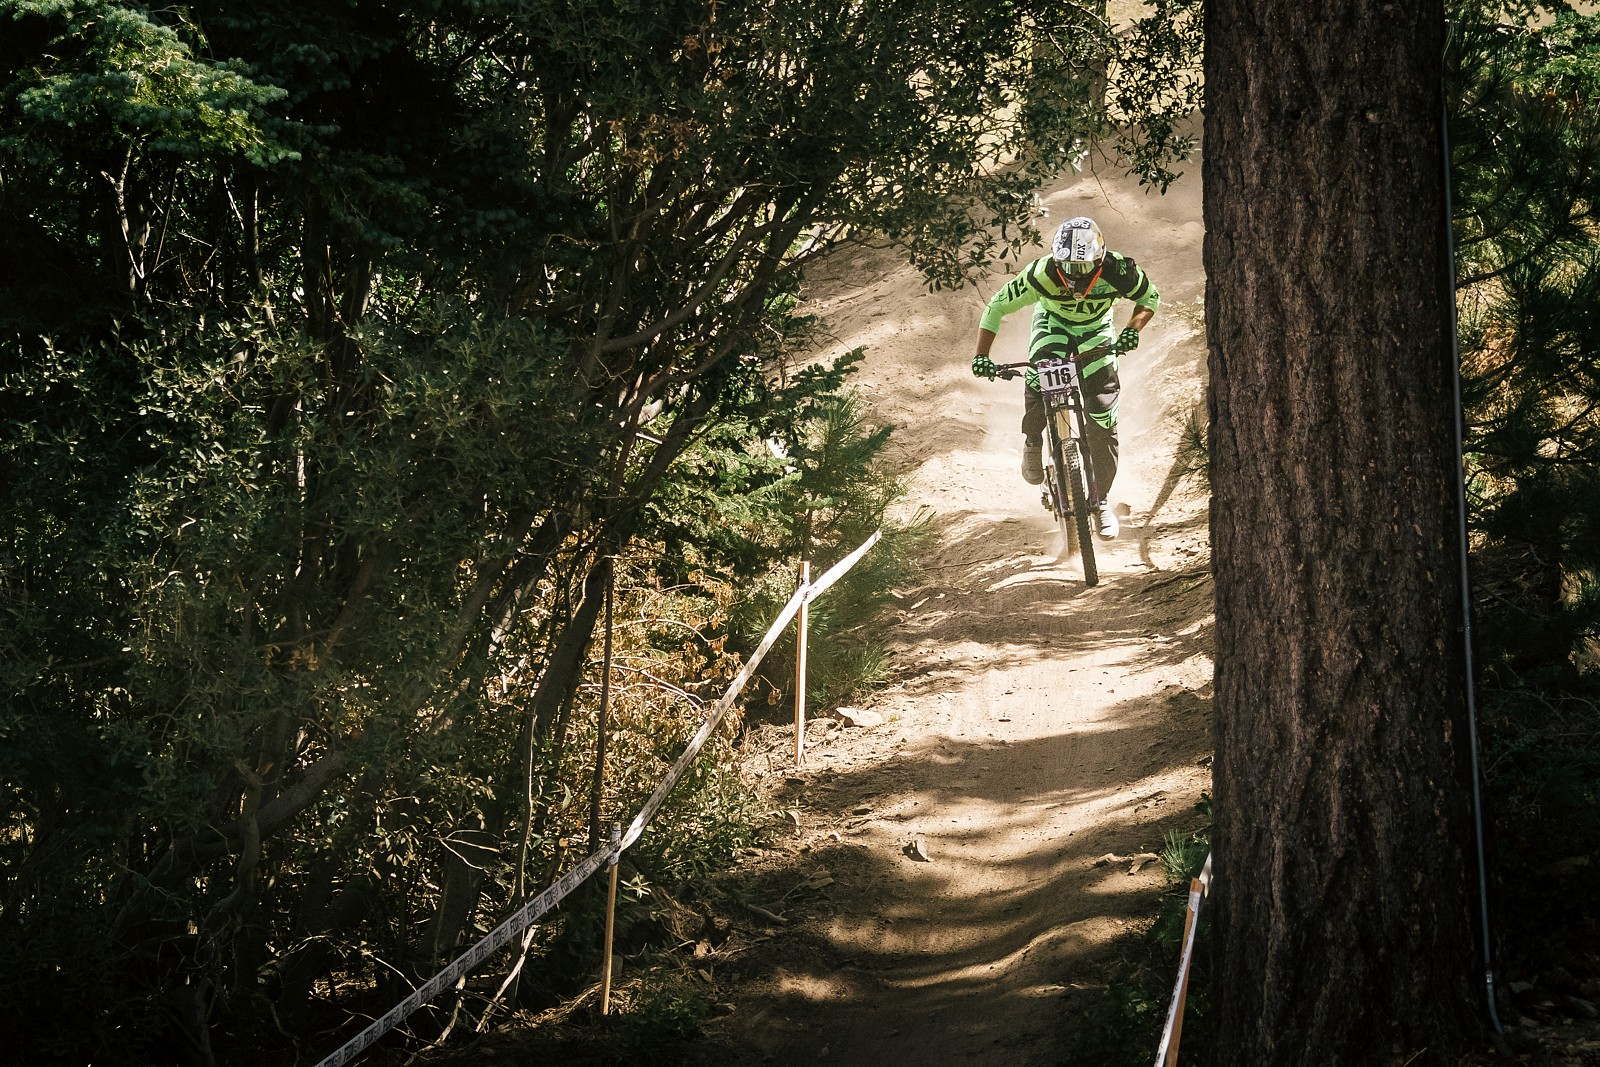 2019USOpenMTB DH yellow-1 - ALeedomPhotography - Mountain Biking Pictures - Vital MTB